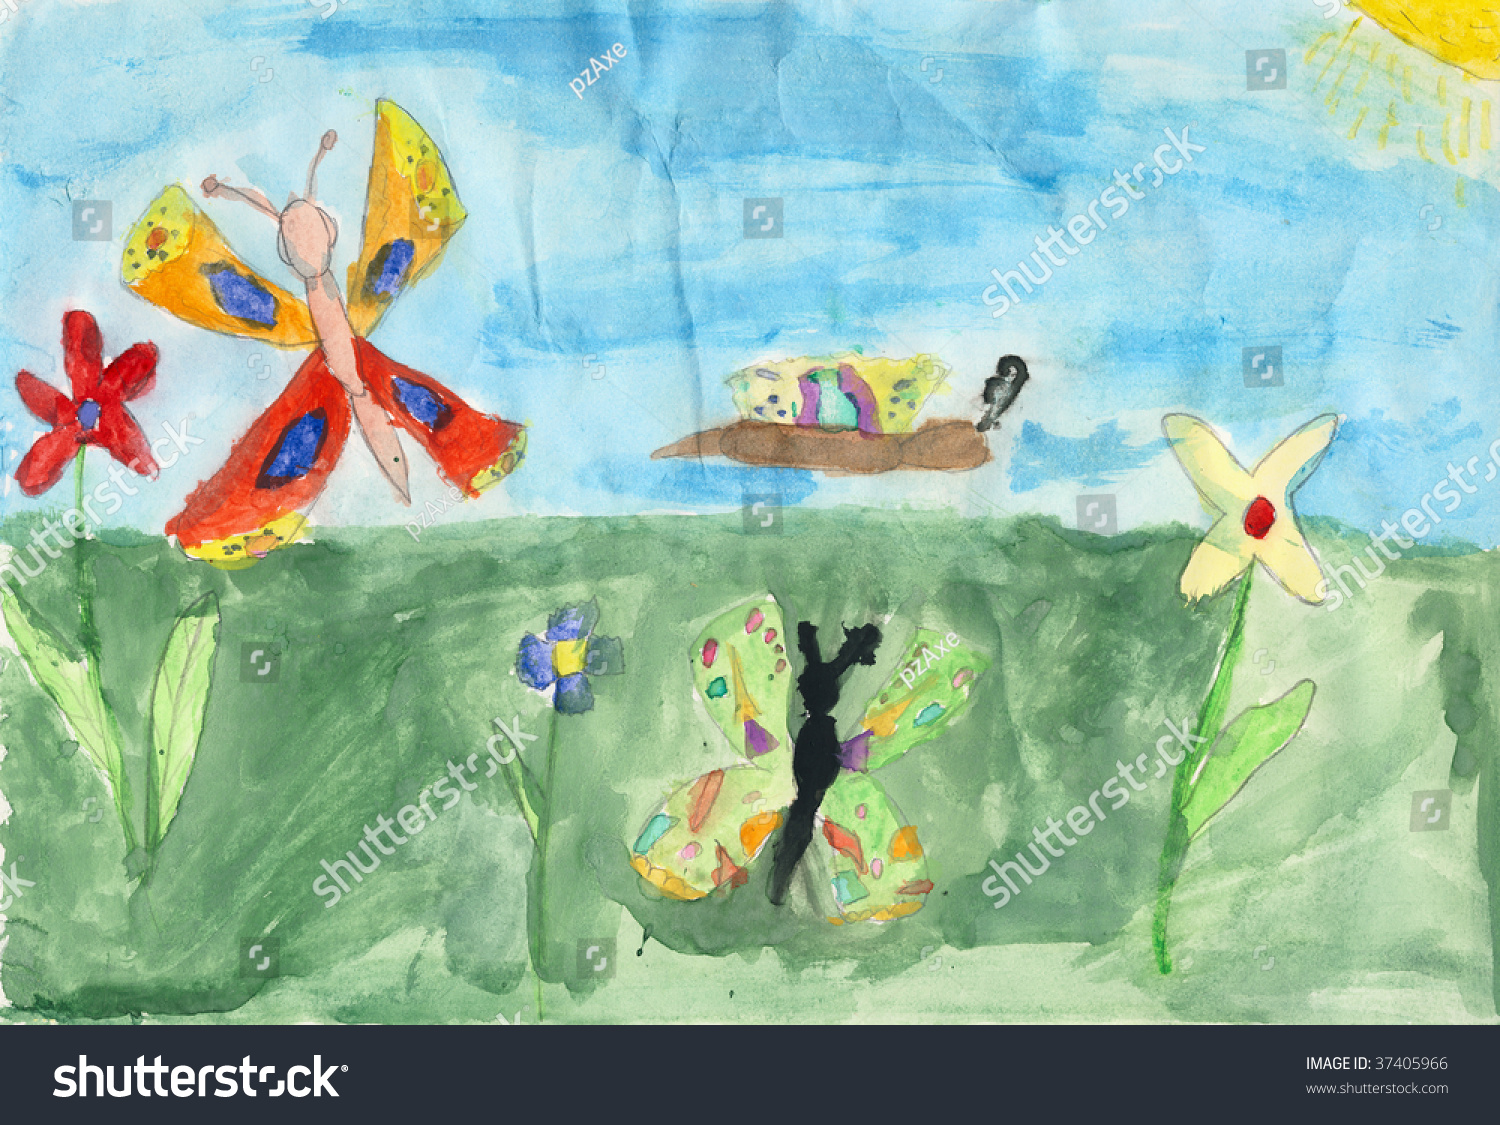 Children Drawing Water Color Paint On Stock Illustration 37405966 ...